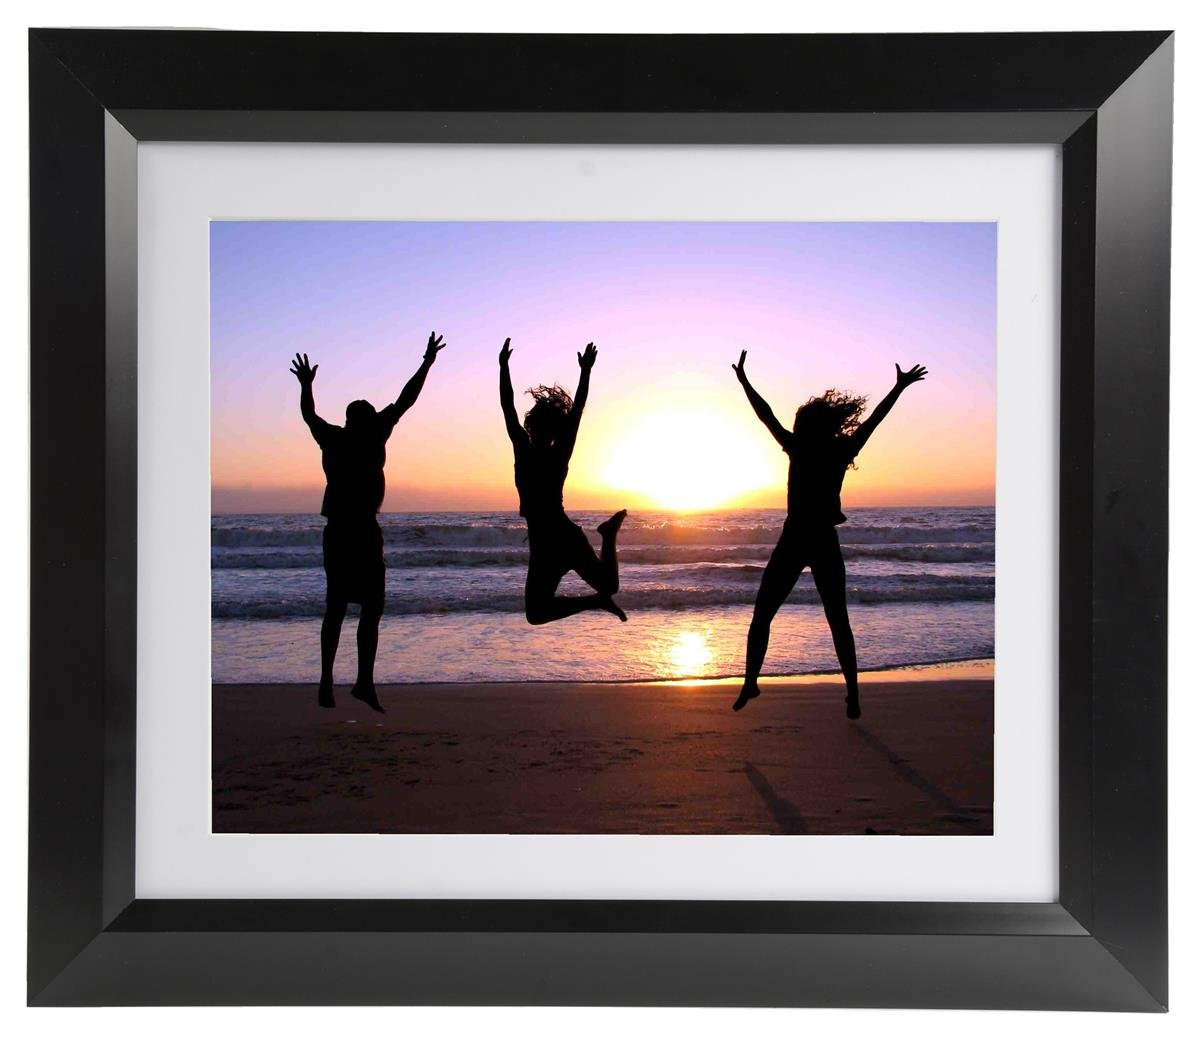 """Set of 3 - Matted 11x14 Photo Frame for Wall Mount Use, Black Plastic Picture Holder with Removable White Mat - 17"""" x 20"""" x 0.875"""""""